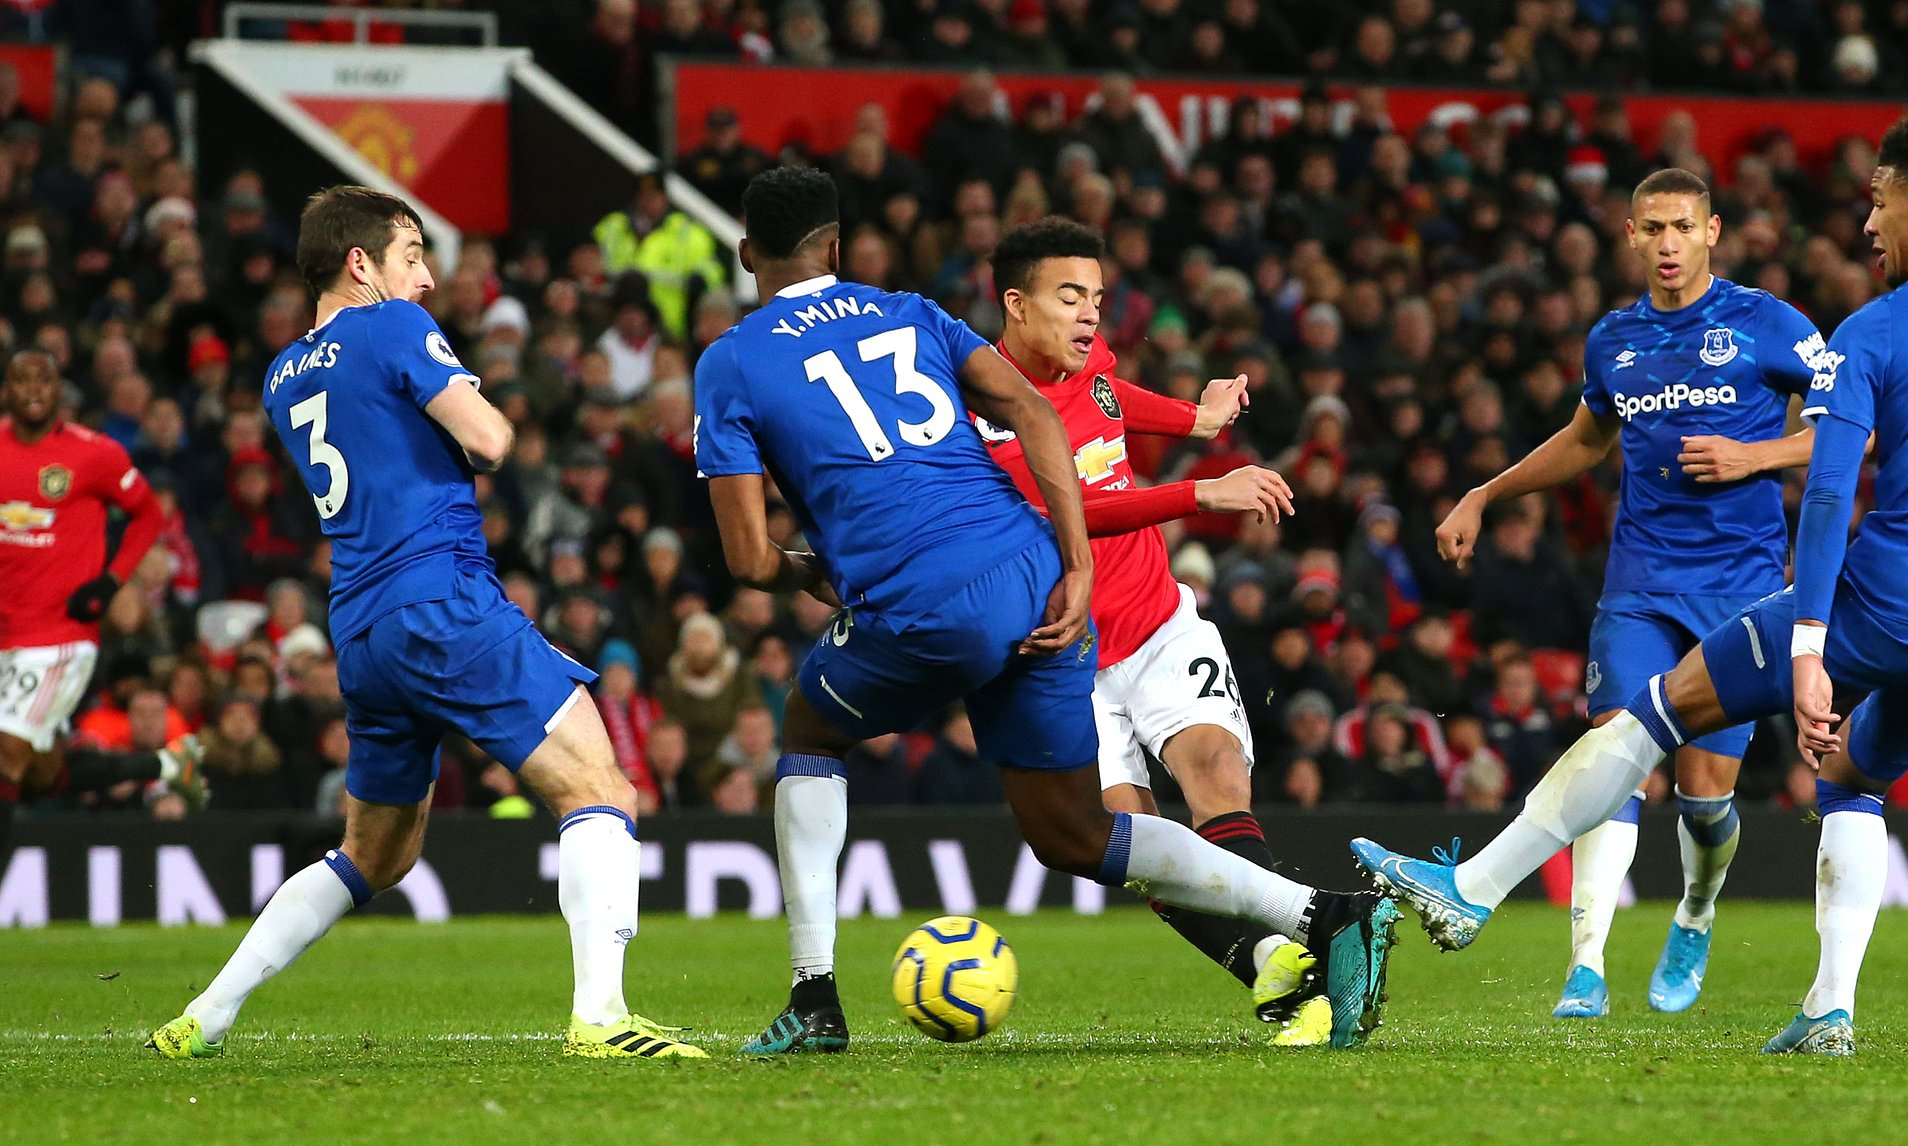 Greenwood second half strike salvage Manchester United from Everton defeat as the spoils shared at Old Trafford